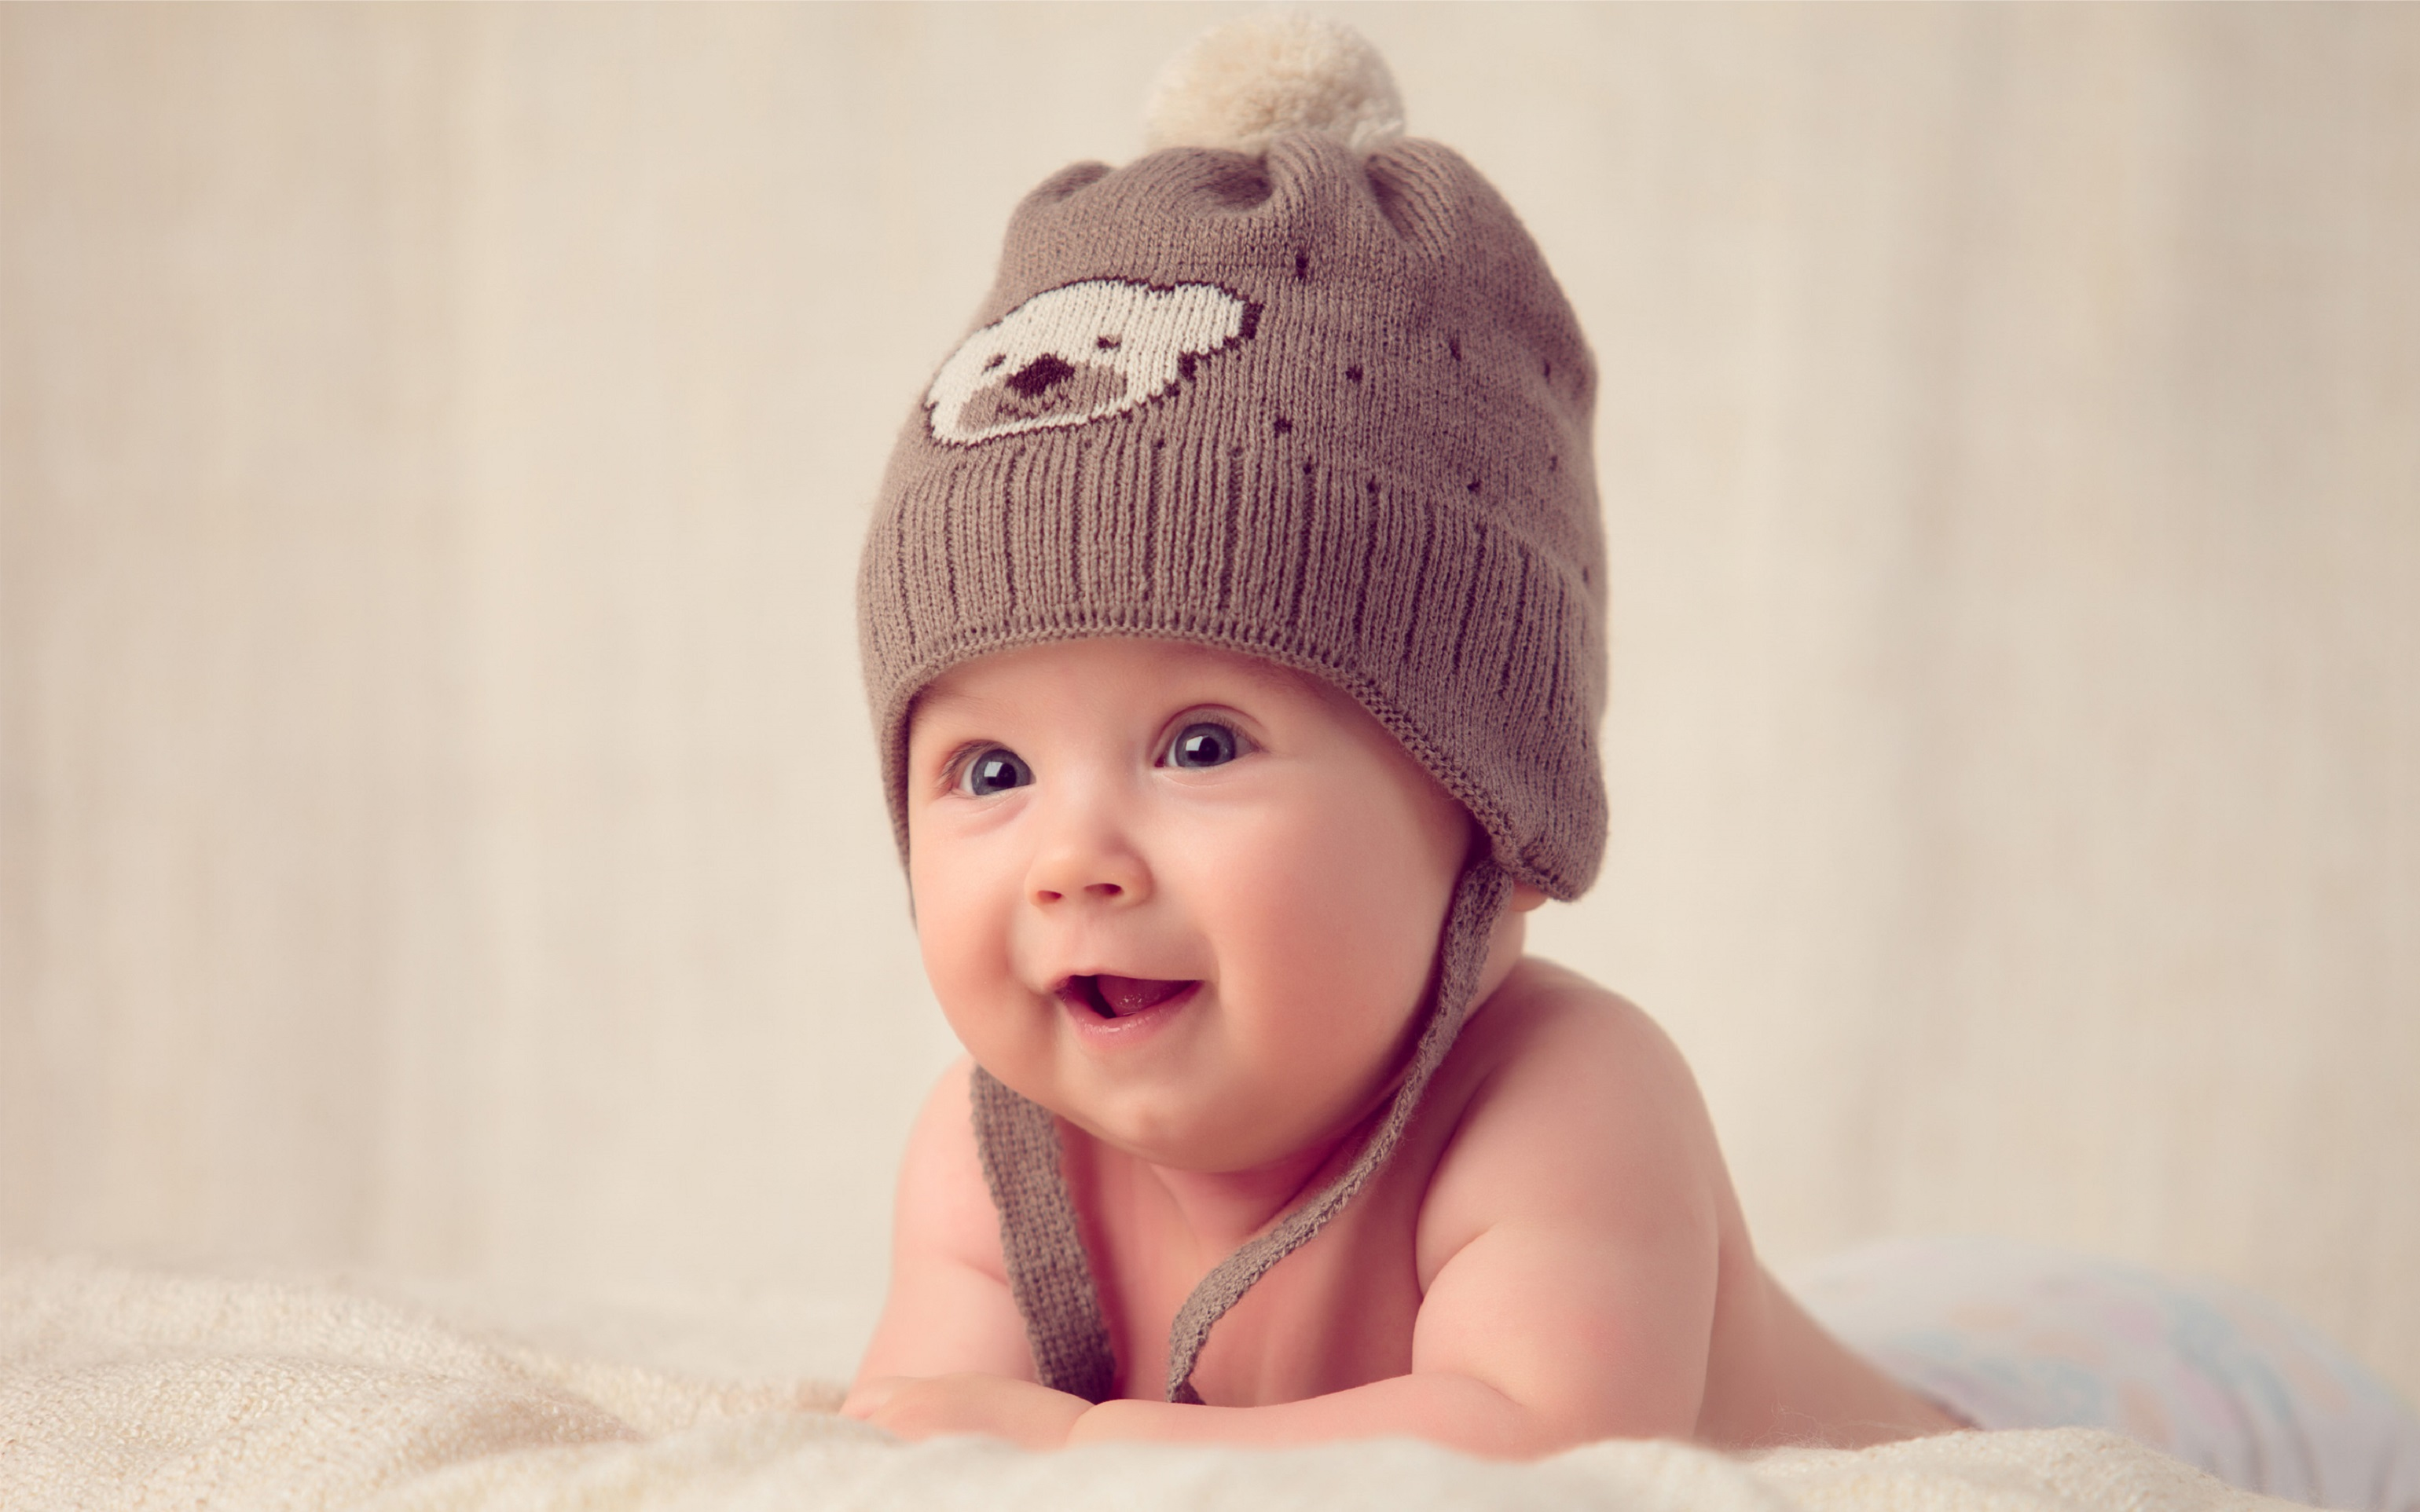 baby wallpapers 2017 very cute hd images free downloadbaby wallpapers very cute hd images free download